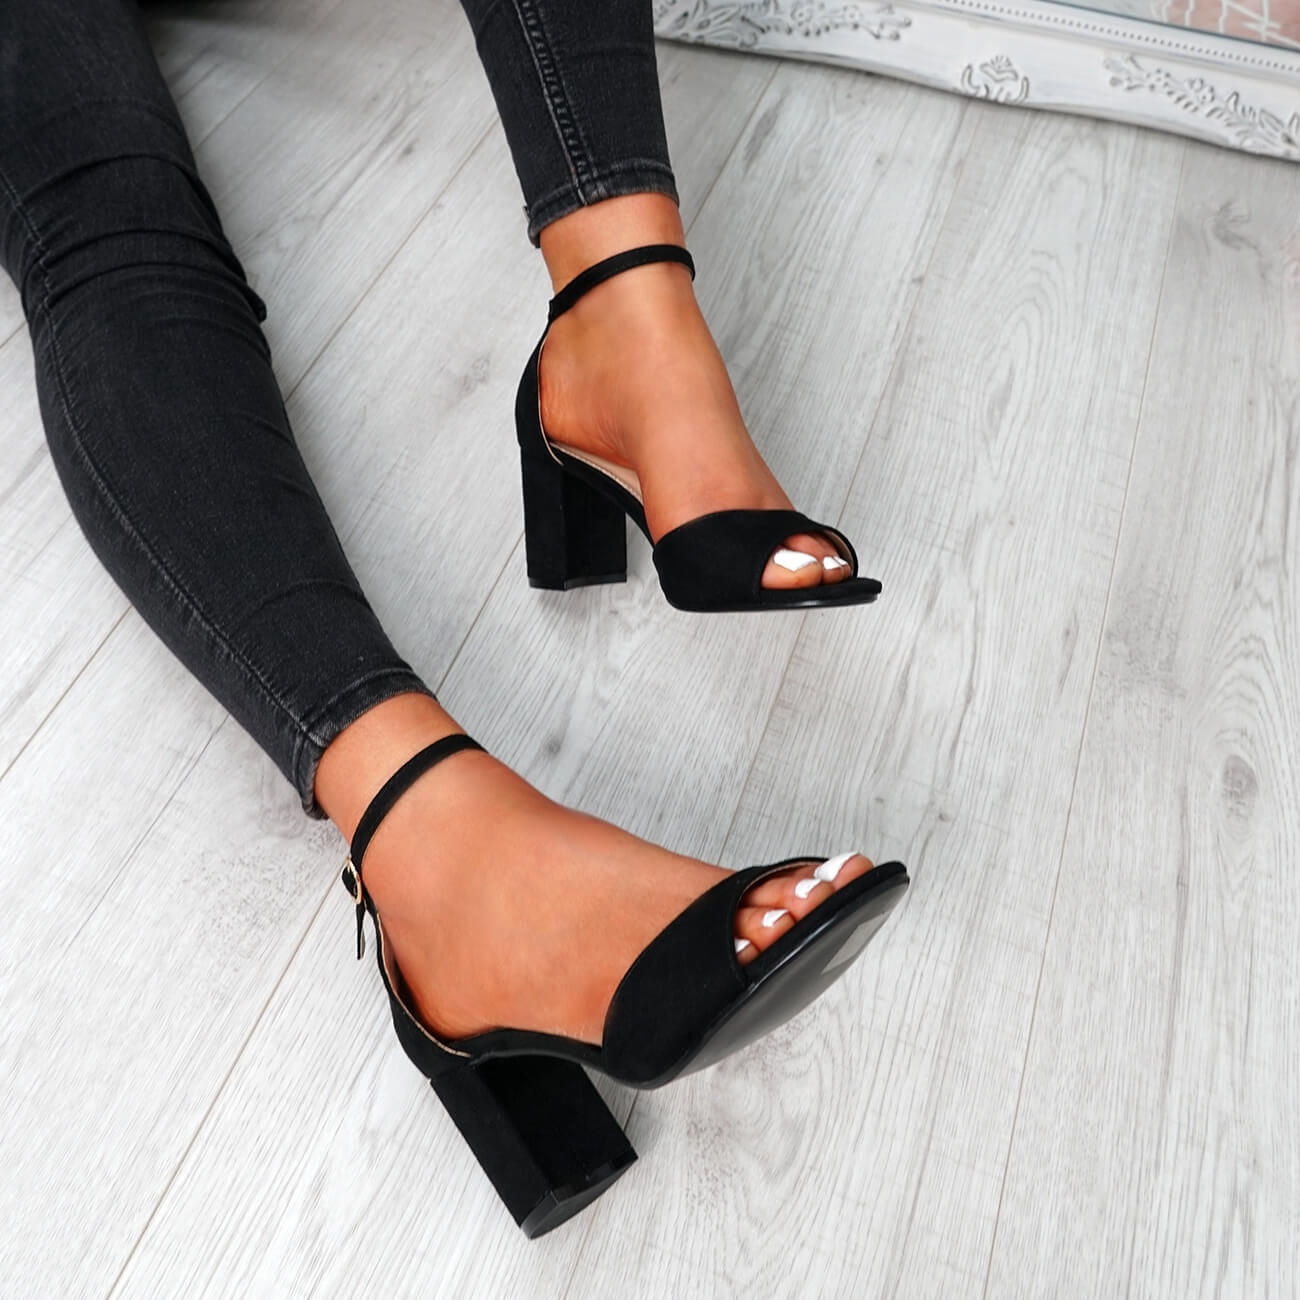 WOMENS-LADIES-ANKLE-STRAP-HIGH-BLOCK-HEEL-SANDALS-PEEP-TOE-PARTY-SHOES-SIZE thumbnail 15